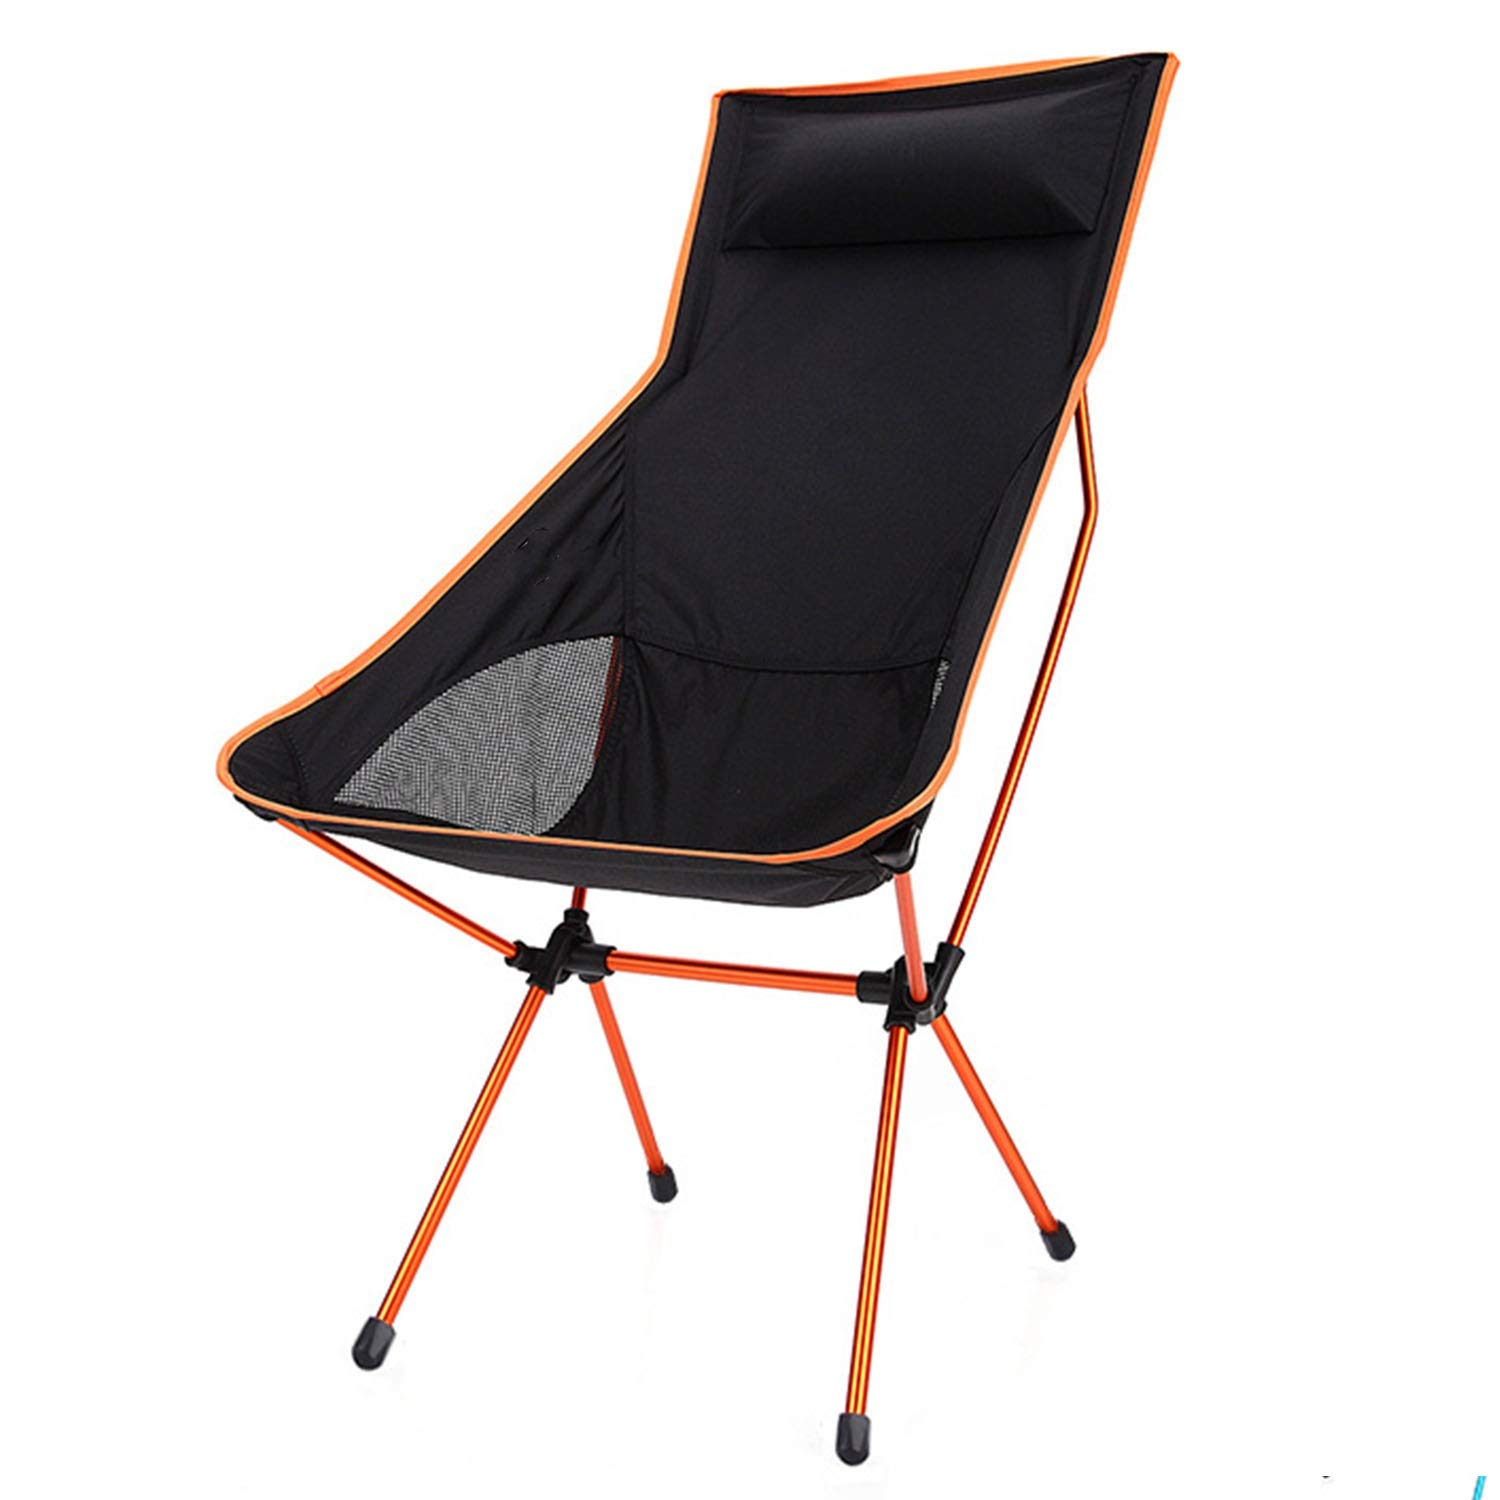 YOZOOE Aluminum Alloy Ultra Light Recliner,Outdoor Folding Chair with Pillow, Portable Camping Supplies, Leisure Back Fishing Chair,Four Colors are Shipped Randomly by YOZOOE